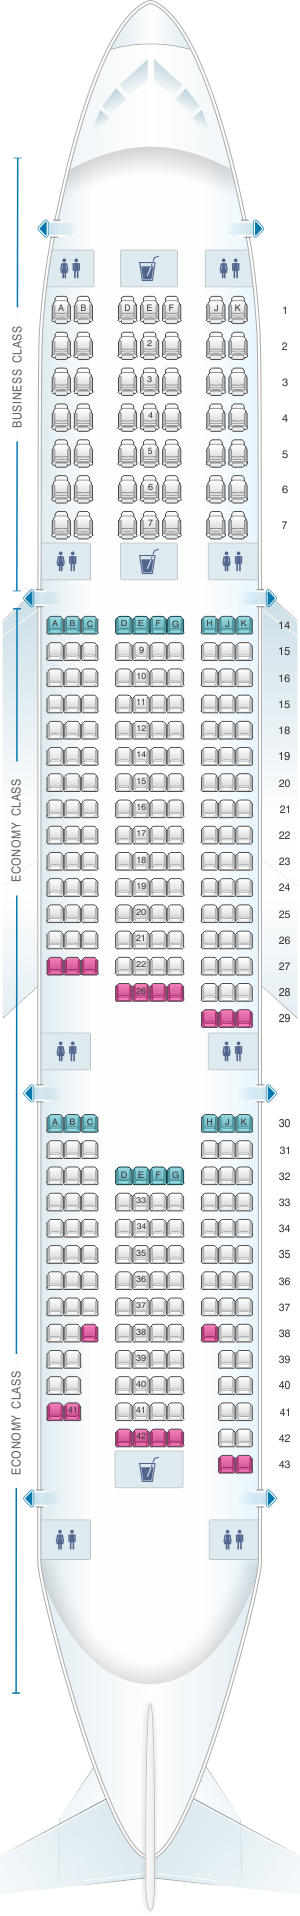 Seat map for Emirates Boeing B777 200LR v2